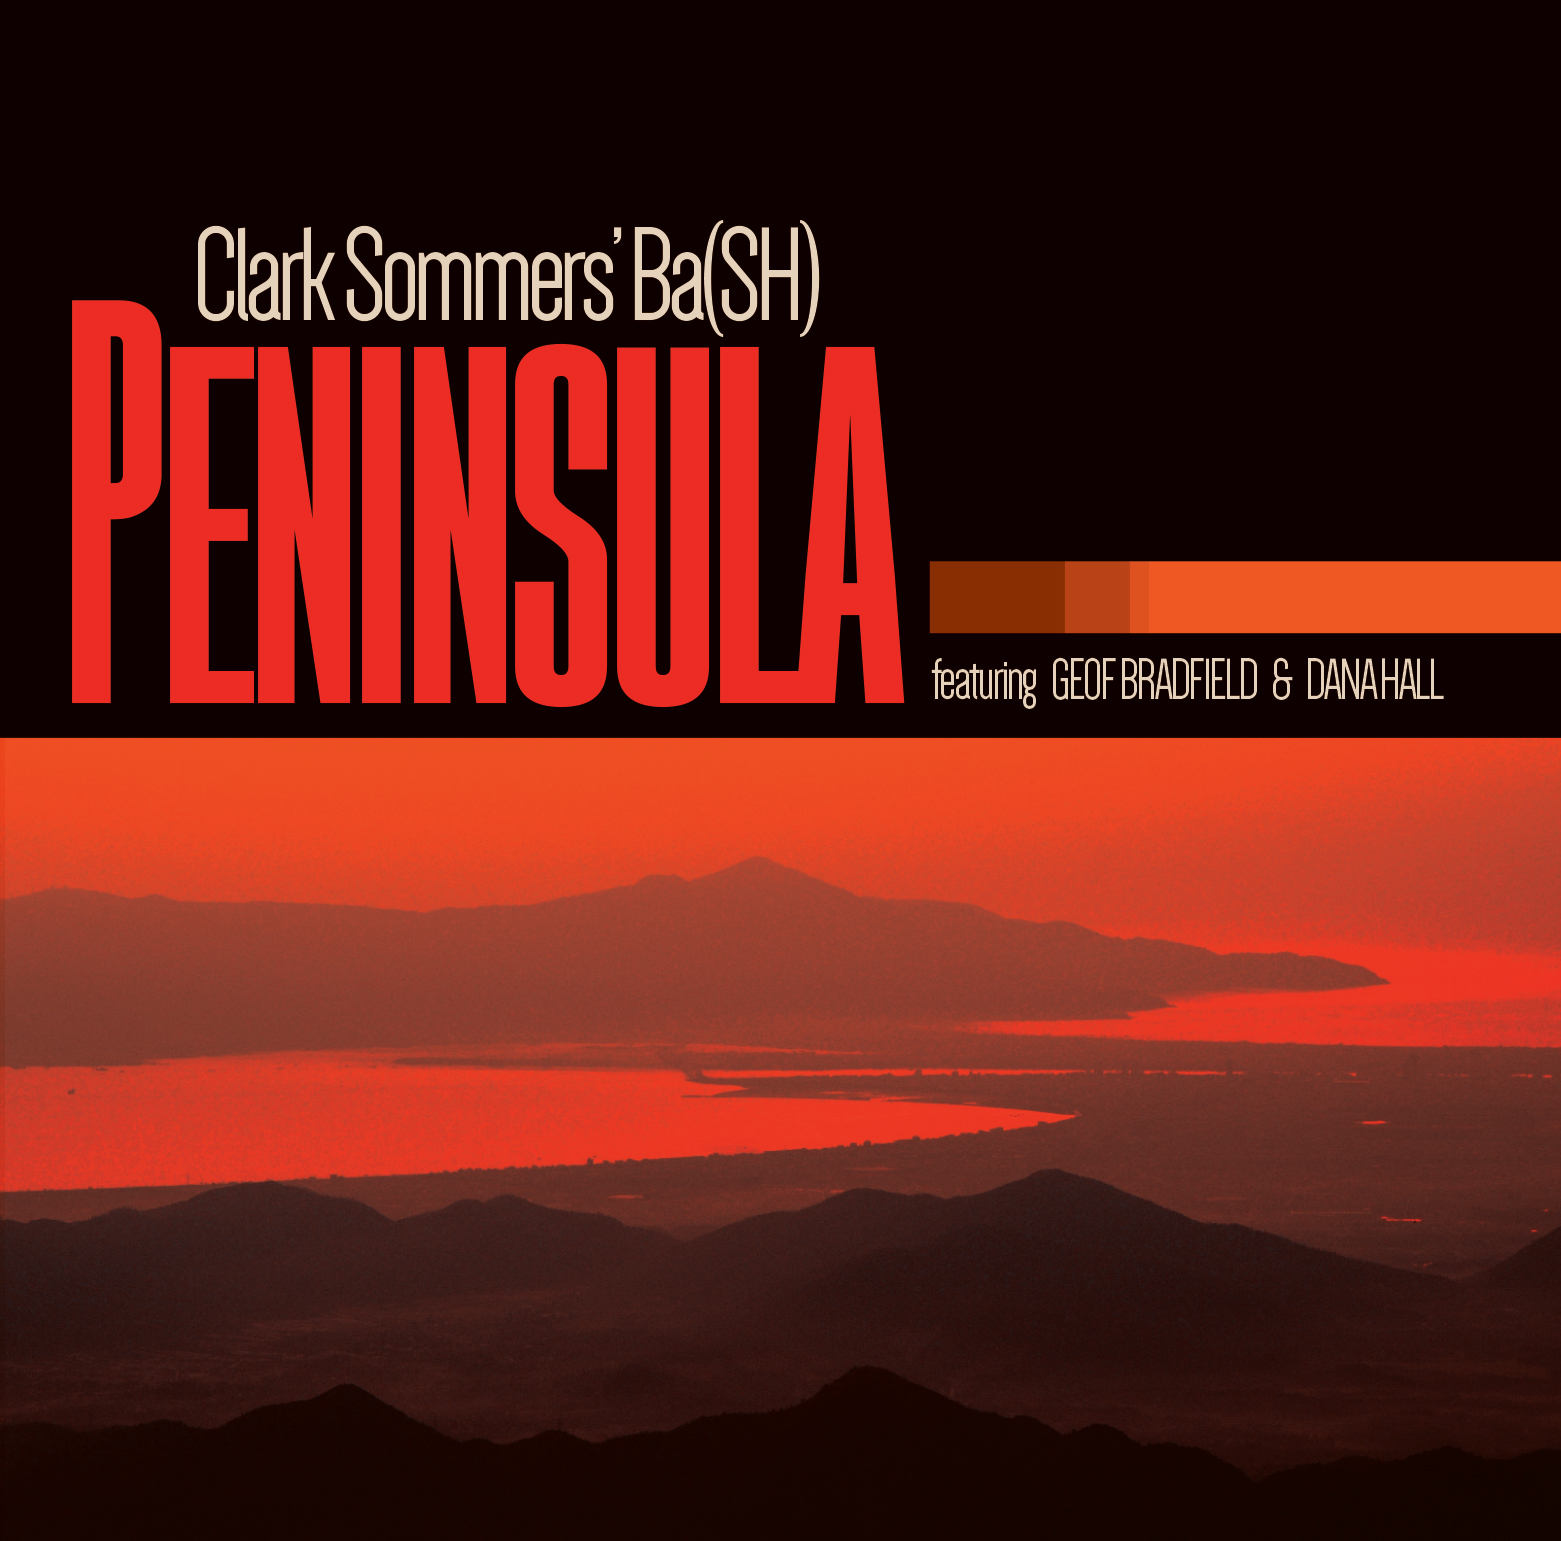 NEW RELEASE: Clark Sommers' Trio Ba(SH) to Release PENINSULA on Outside in Music on March 6, 2020